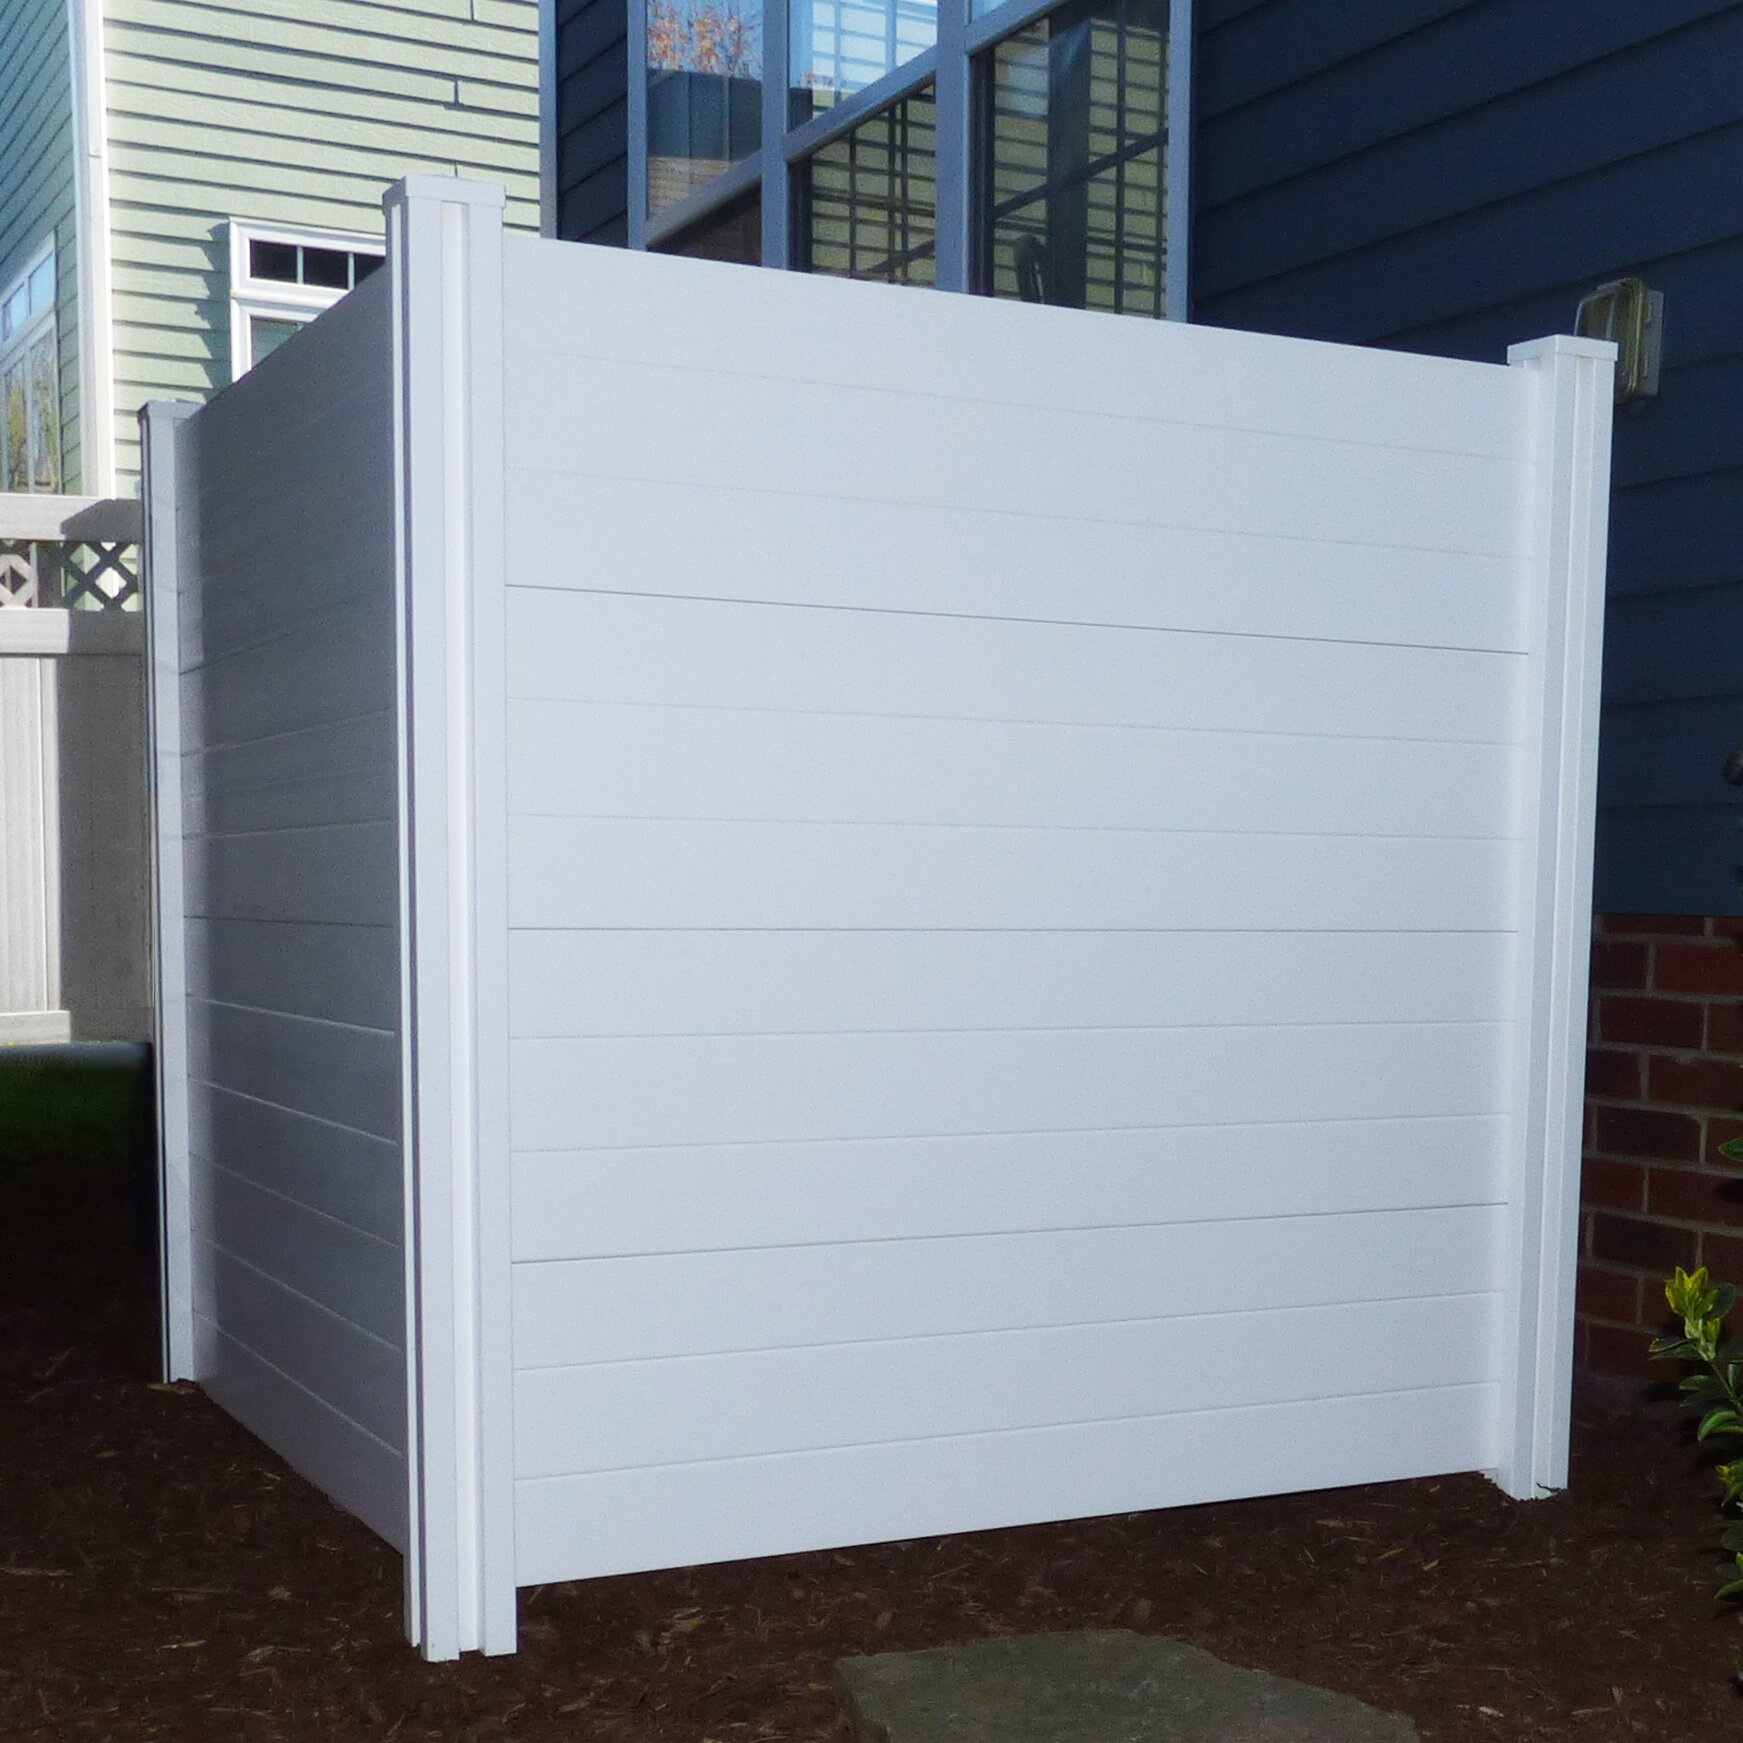 Privacy: Zippity Outdoor Products Deluxe Premium No Dig Vinyl